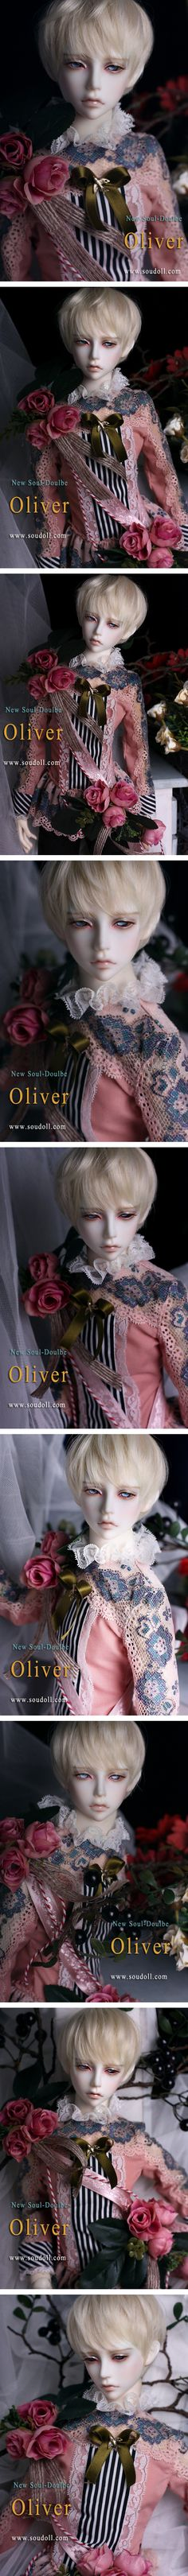 Souldoll's Special Limited Head - Oliver (Double boy head) ...been trying to convince myself I don't need him ...but <3  *Special ball jointed doll for you, SOULDOLL* http://souldoll.com/shop/step1.php?number=3840